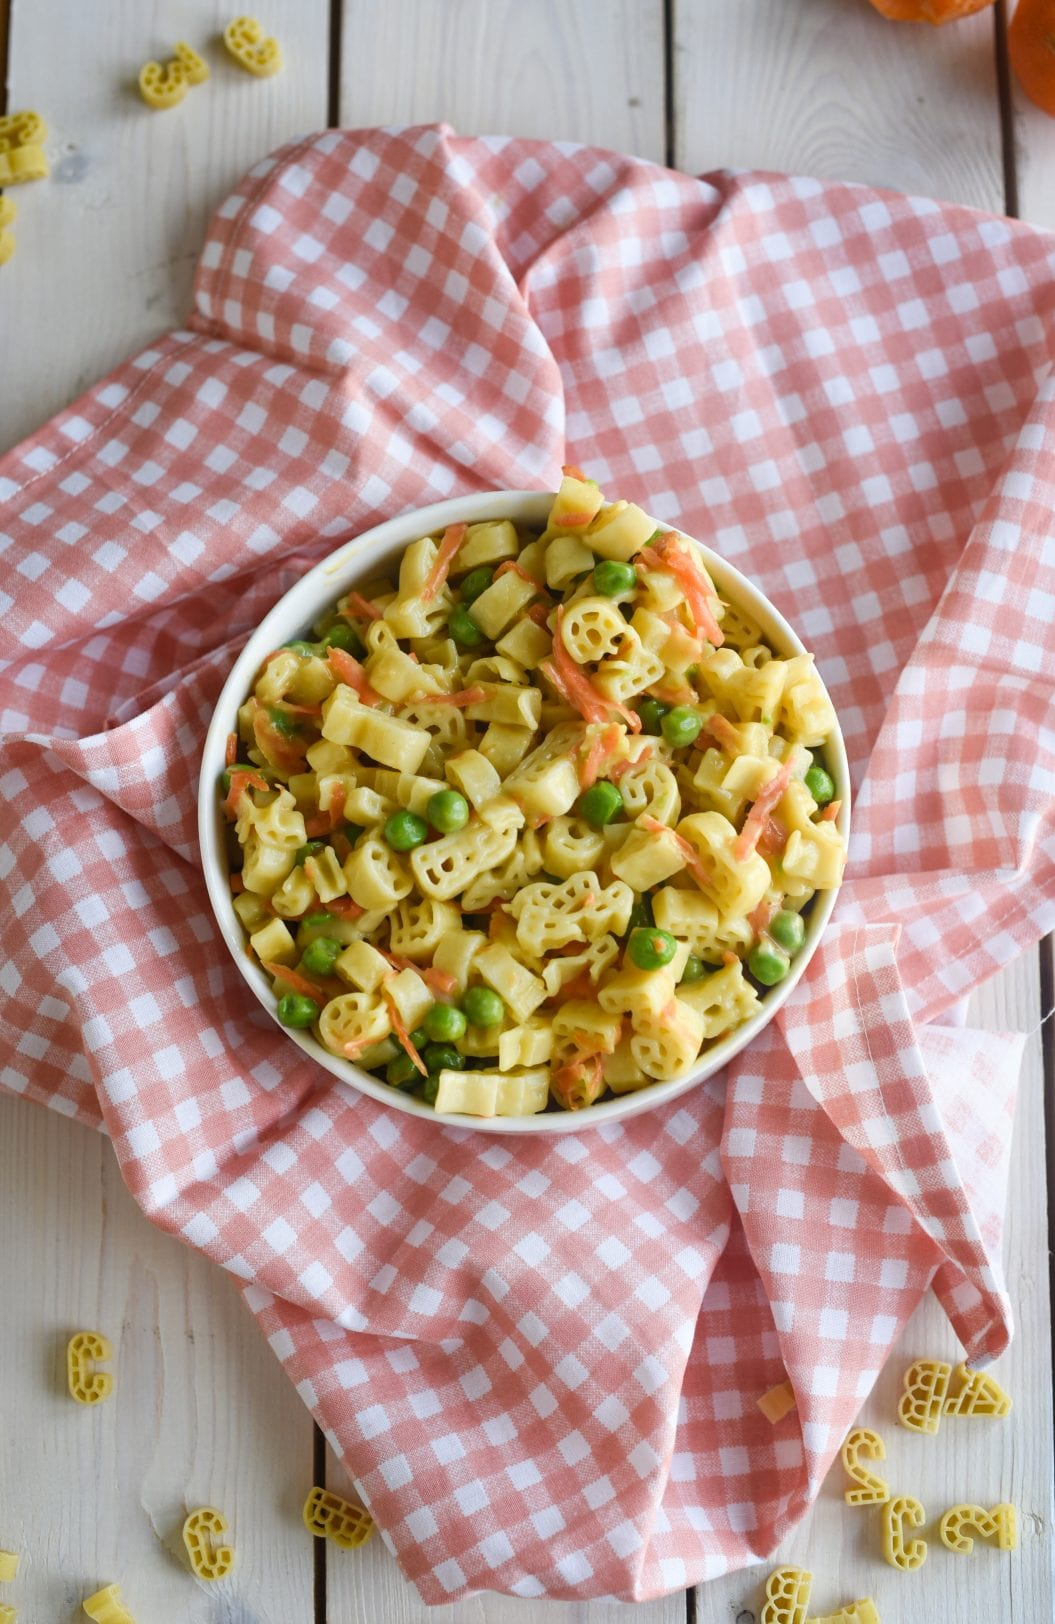 pasta and vegetable in bowls